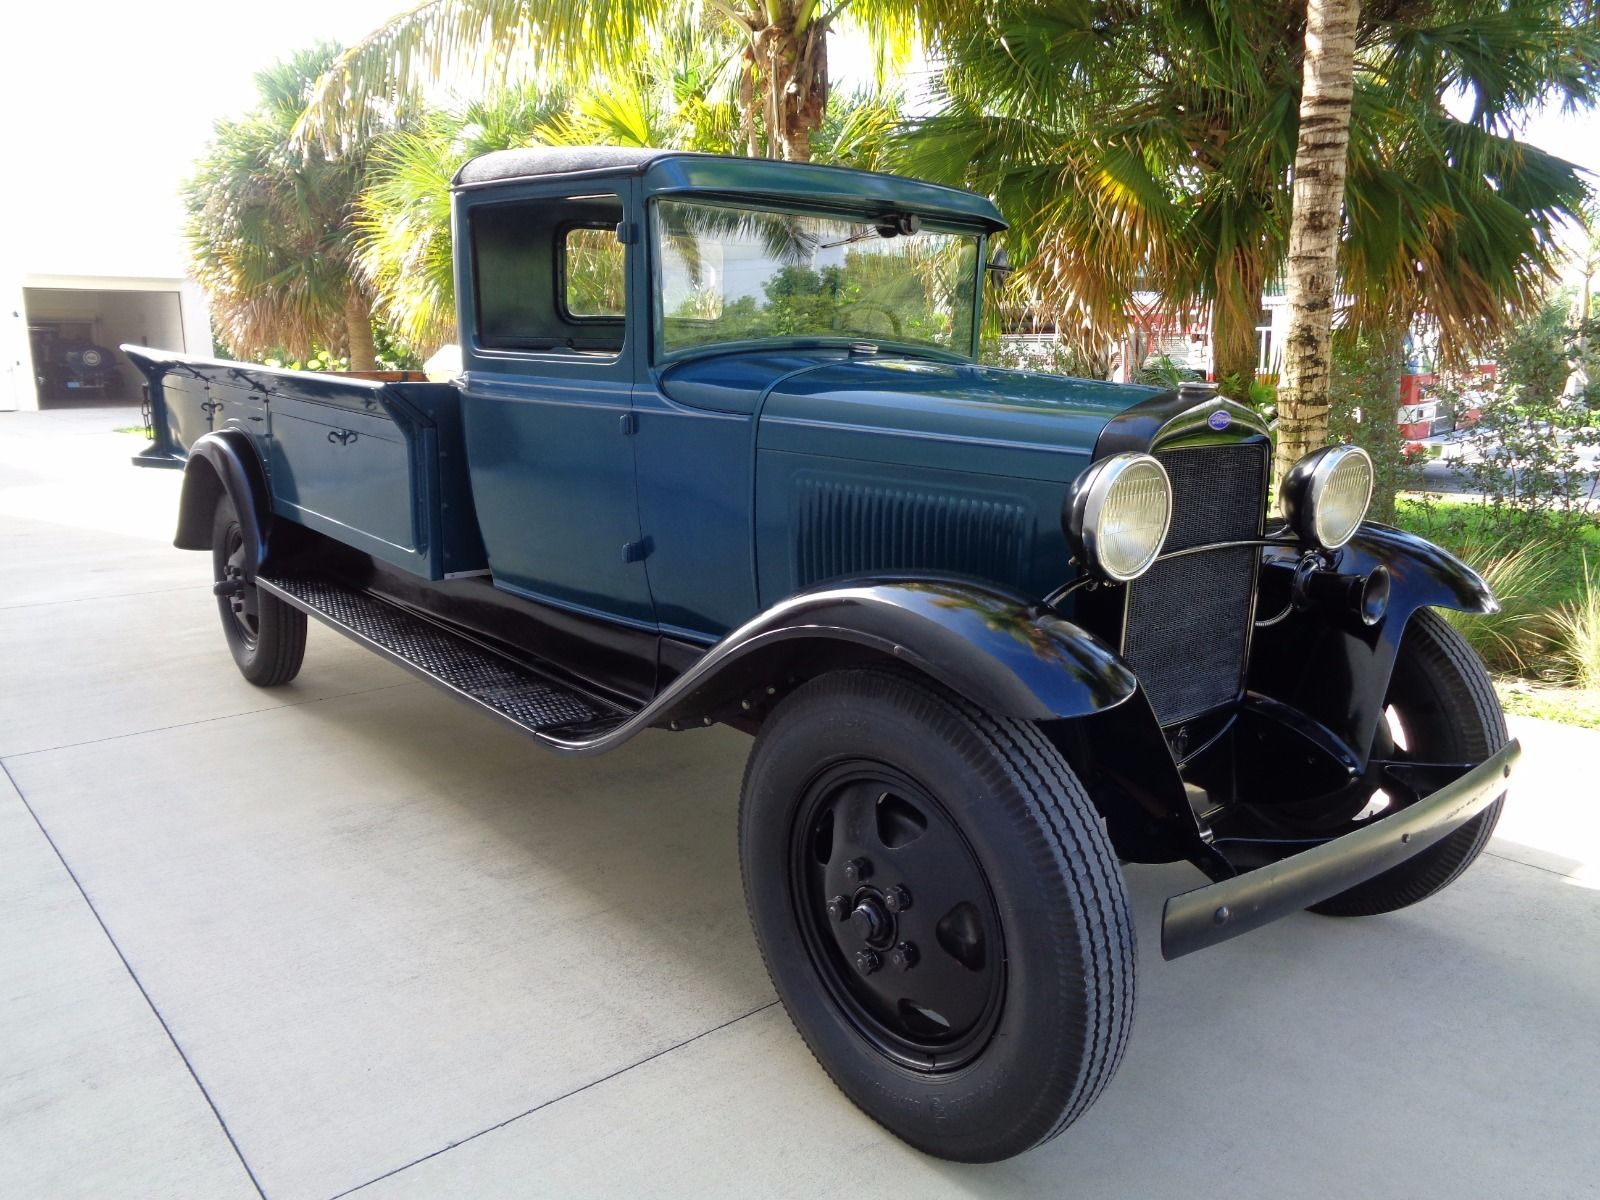 Daily Turismo Auction Watch 1931 Ford Model A Truck 1980 Coe Find This Here On Ebay Bidding For 8495 Reserve Not Met With 4 Days To Go Located In Millstone Township Nj